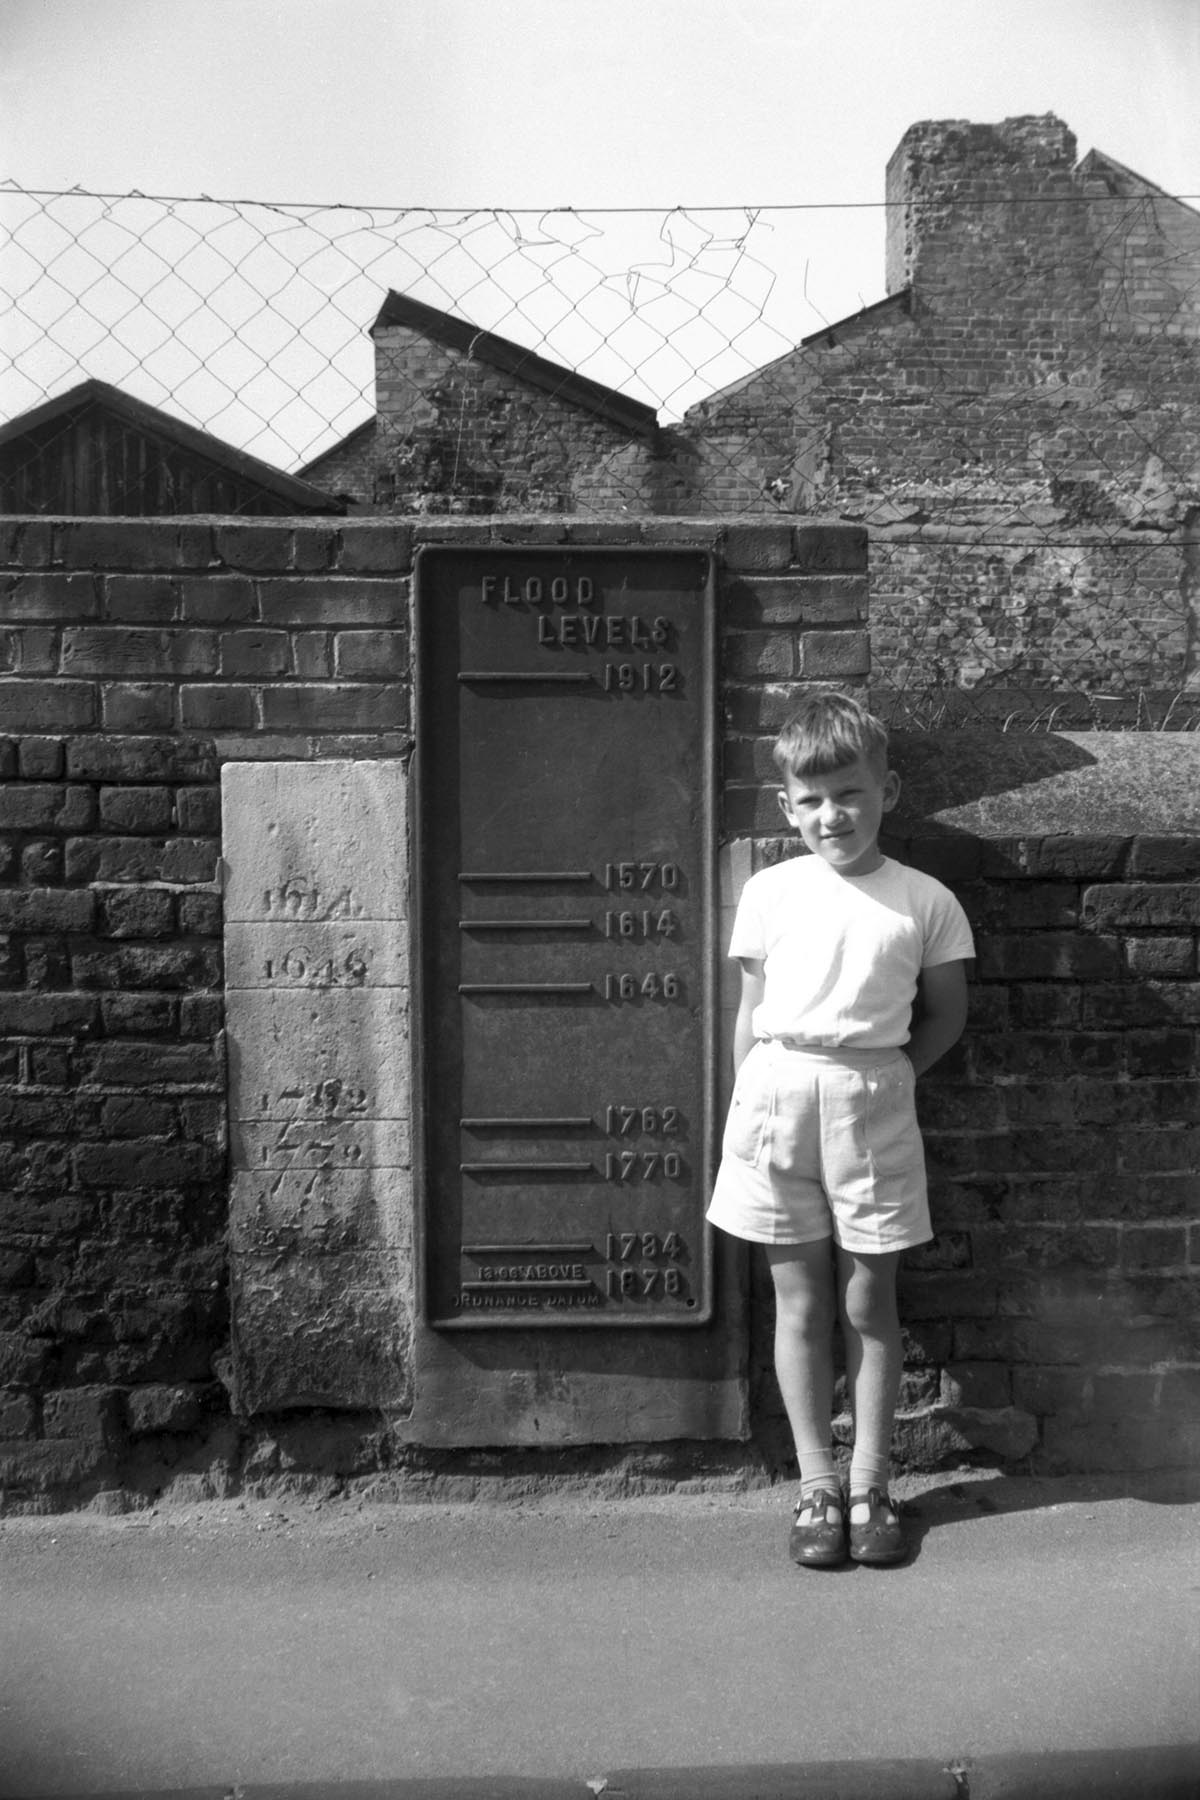 Flood level gauges New Mills Yard [4640] 1961-08-27